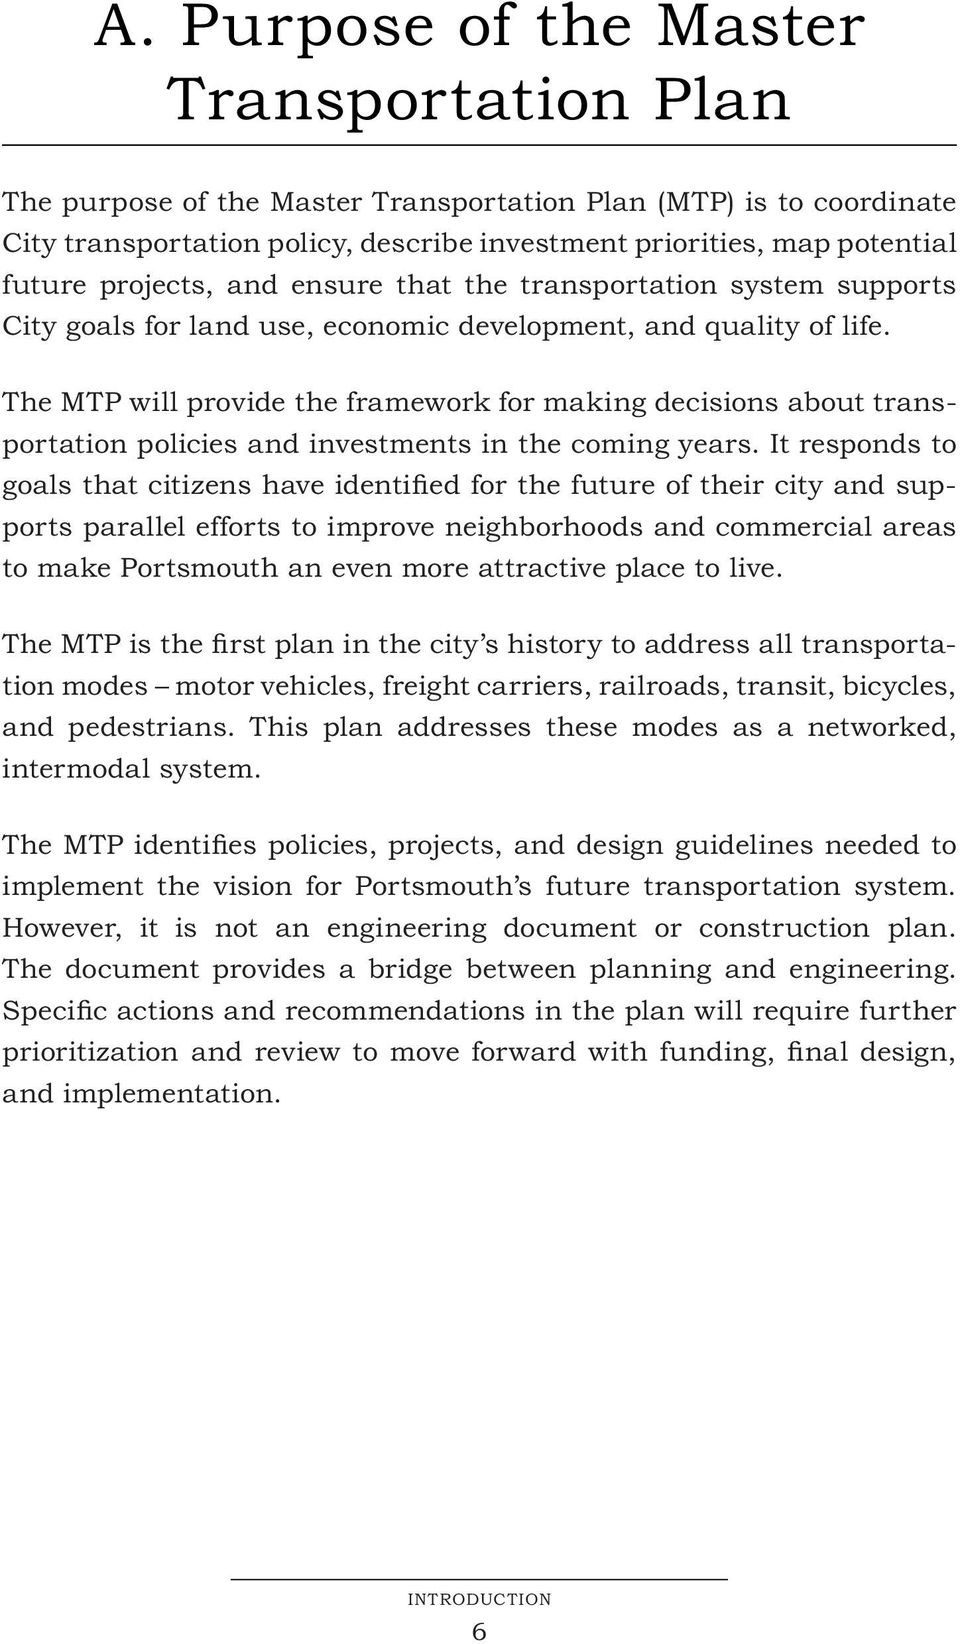 The MTP will provide the framework for making decisions about transportation policies and investments in the coming years.